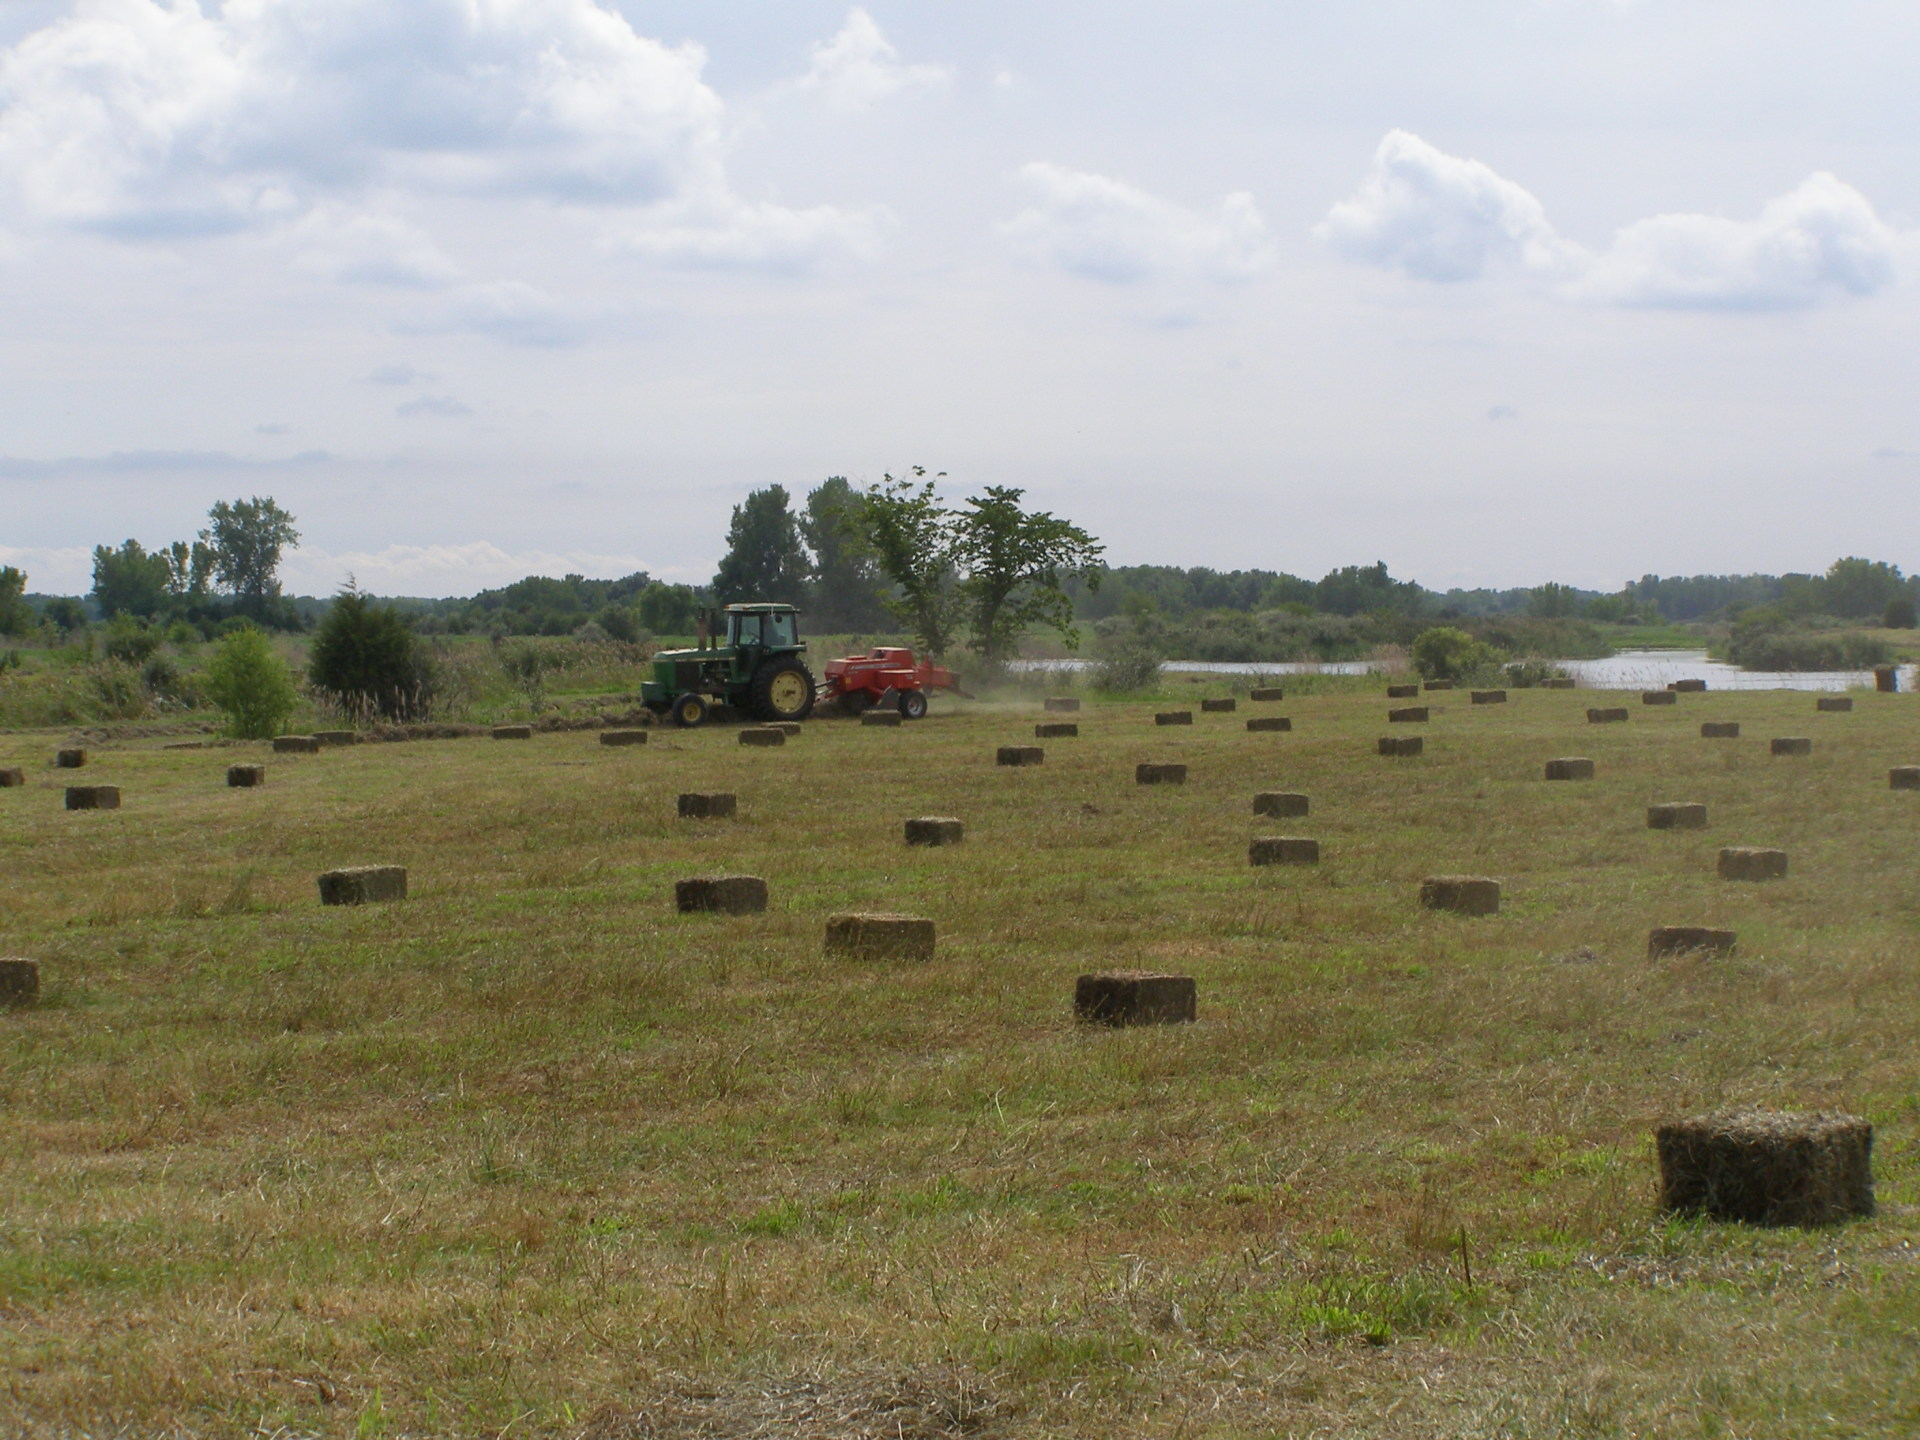 Baling alfalfa-grass mix hay into small squares using Hesston baler and an old John Deere tractor.